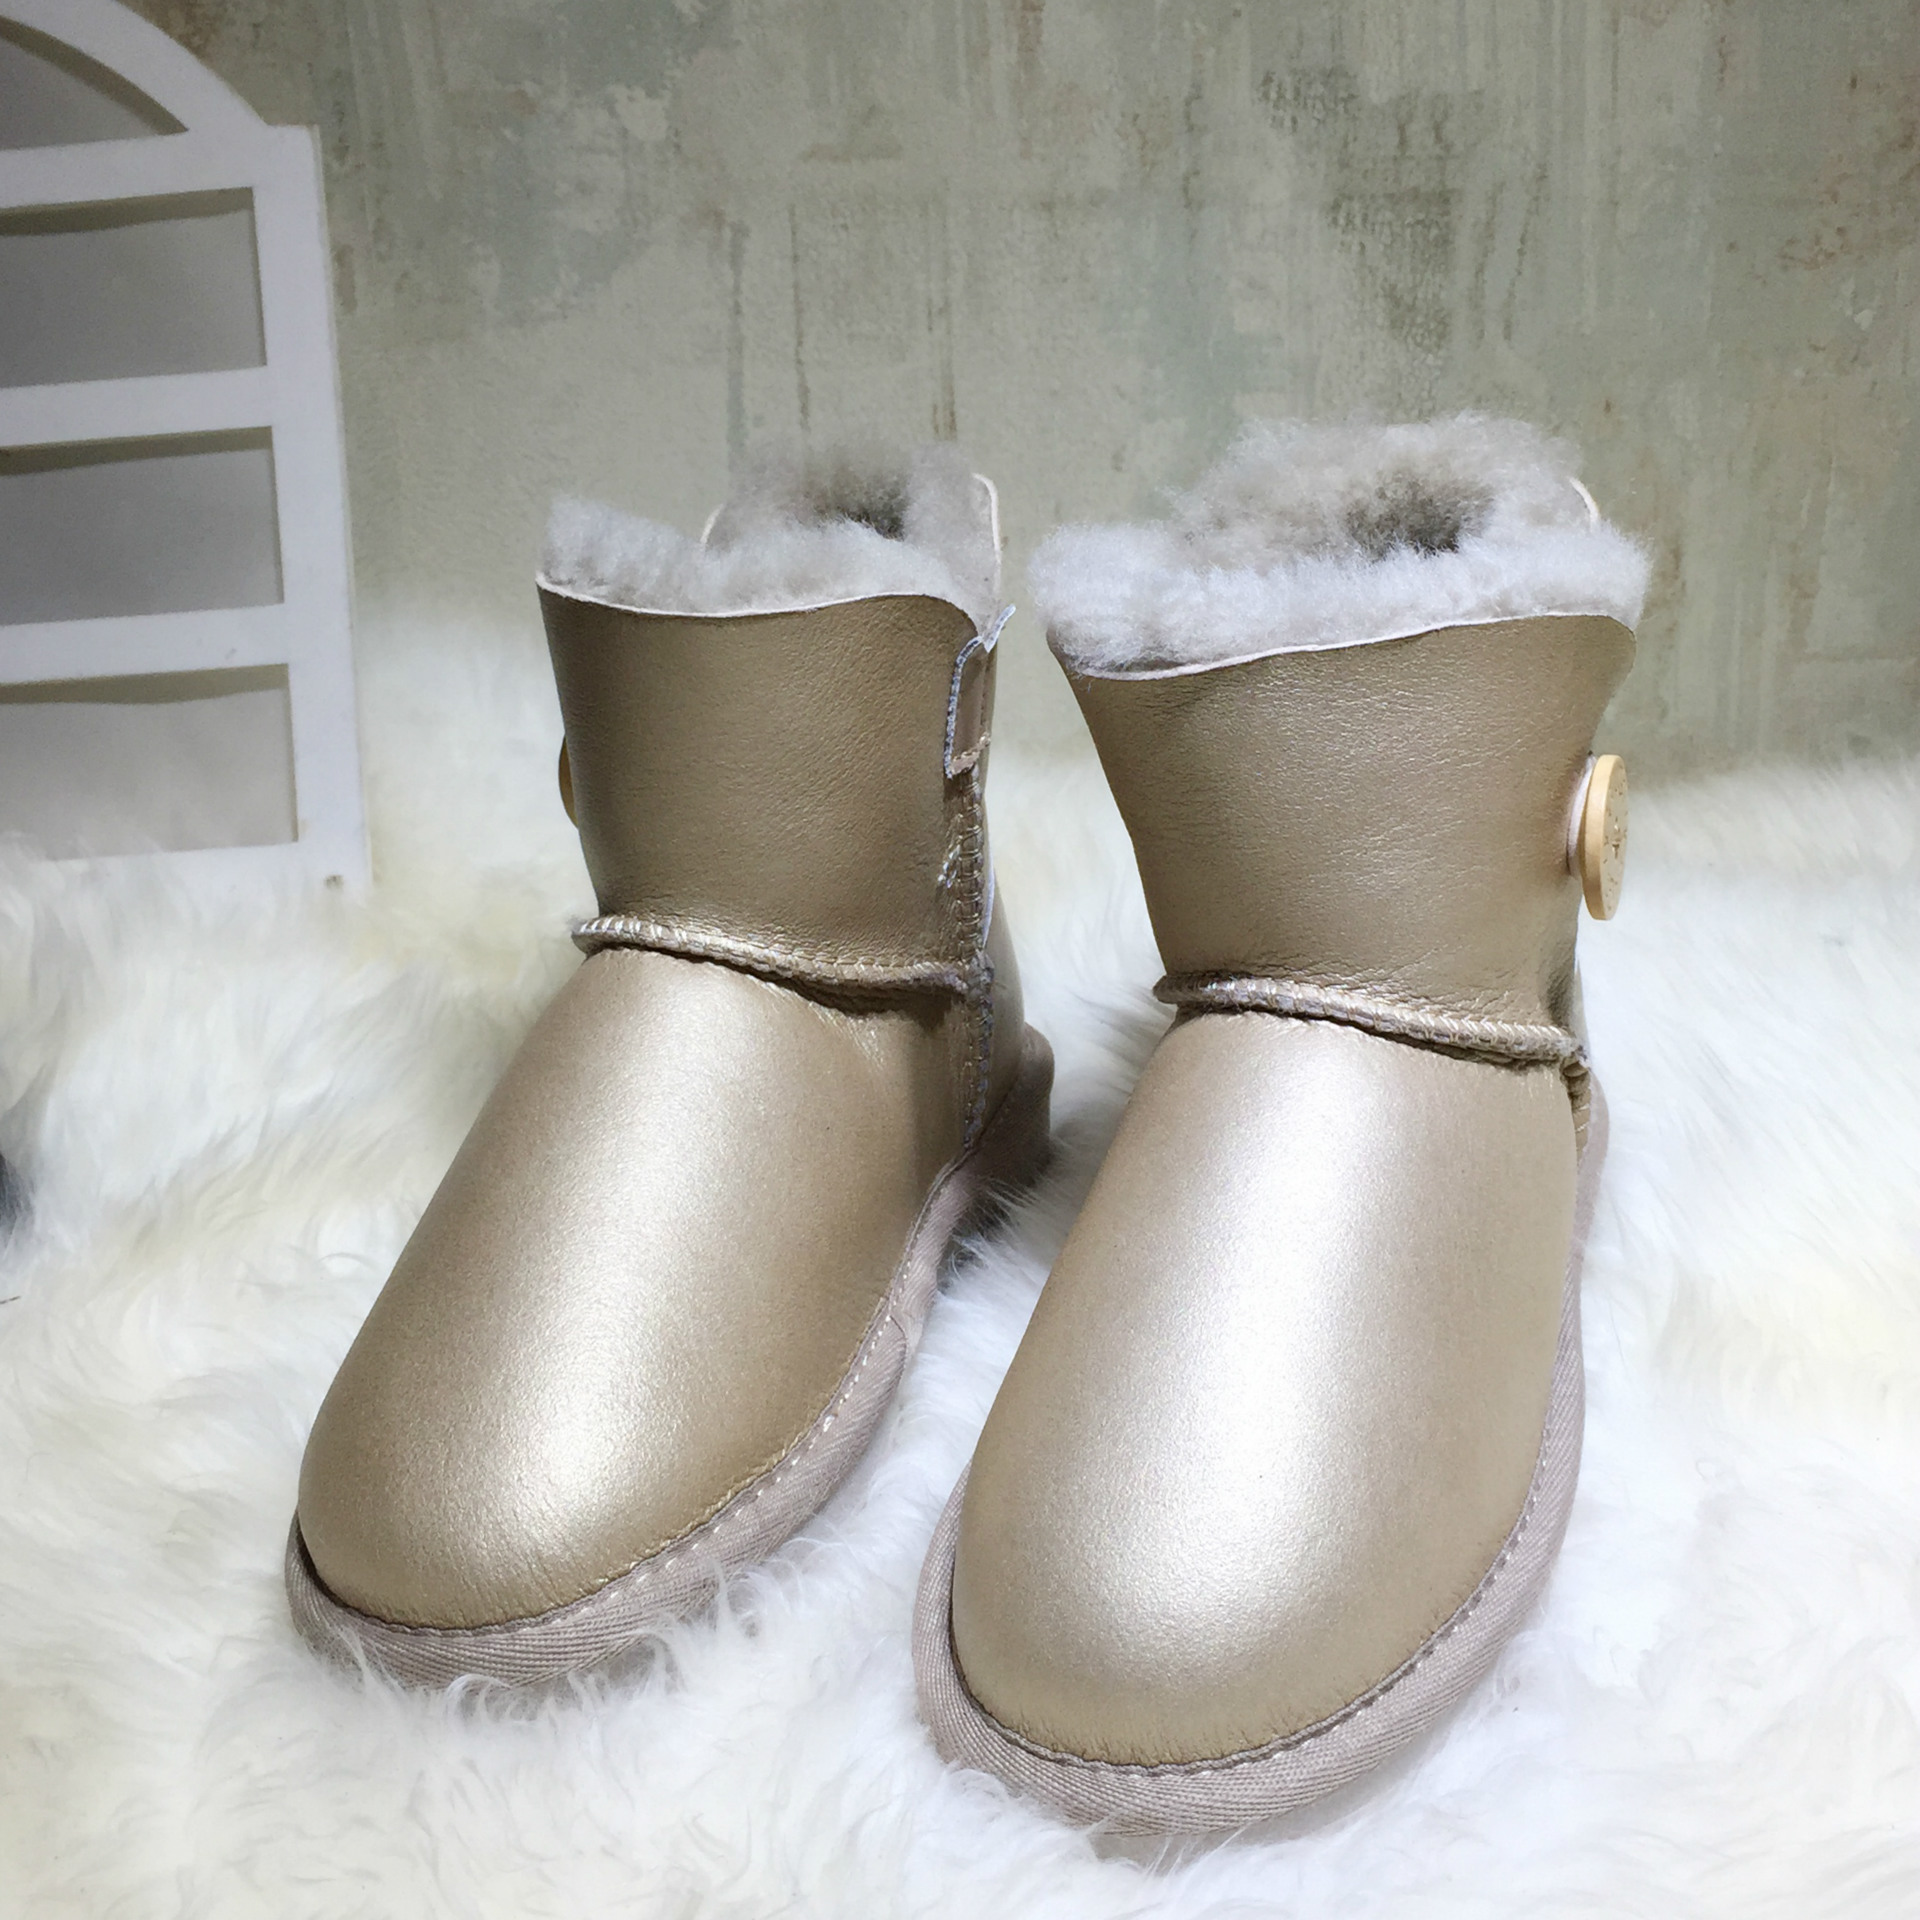 Quality Genuine Sheepskin Leather Snow Boots Women Waterproof Winter Boots 100% Natural Fur Wool Button UG Australia Women Boots 2016 australia fashion high quality waterproof genuine sheepskin leather snow boots real fur 100% wool women winter snow boots